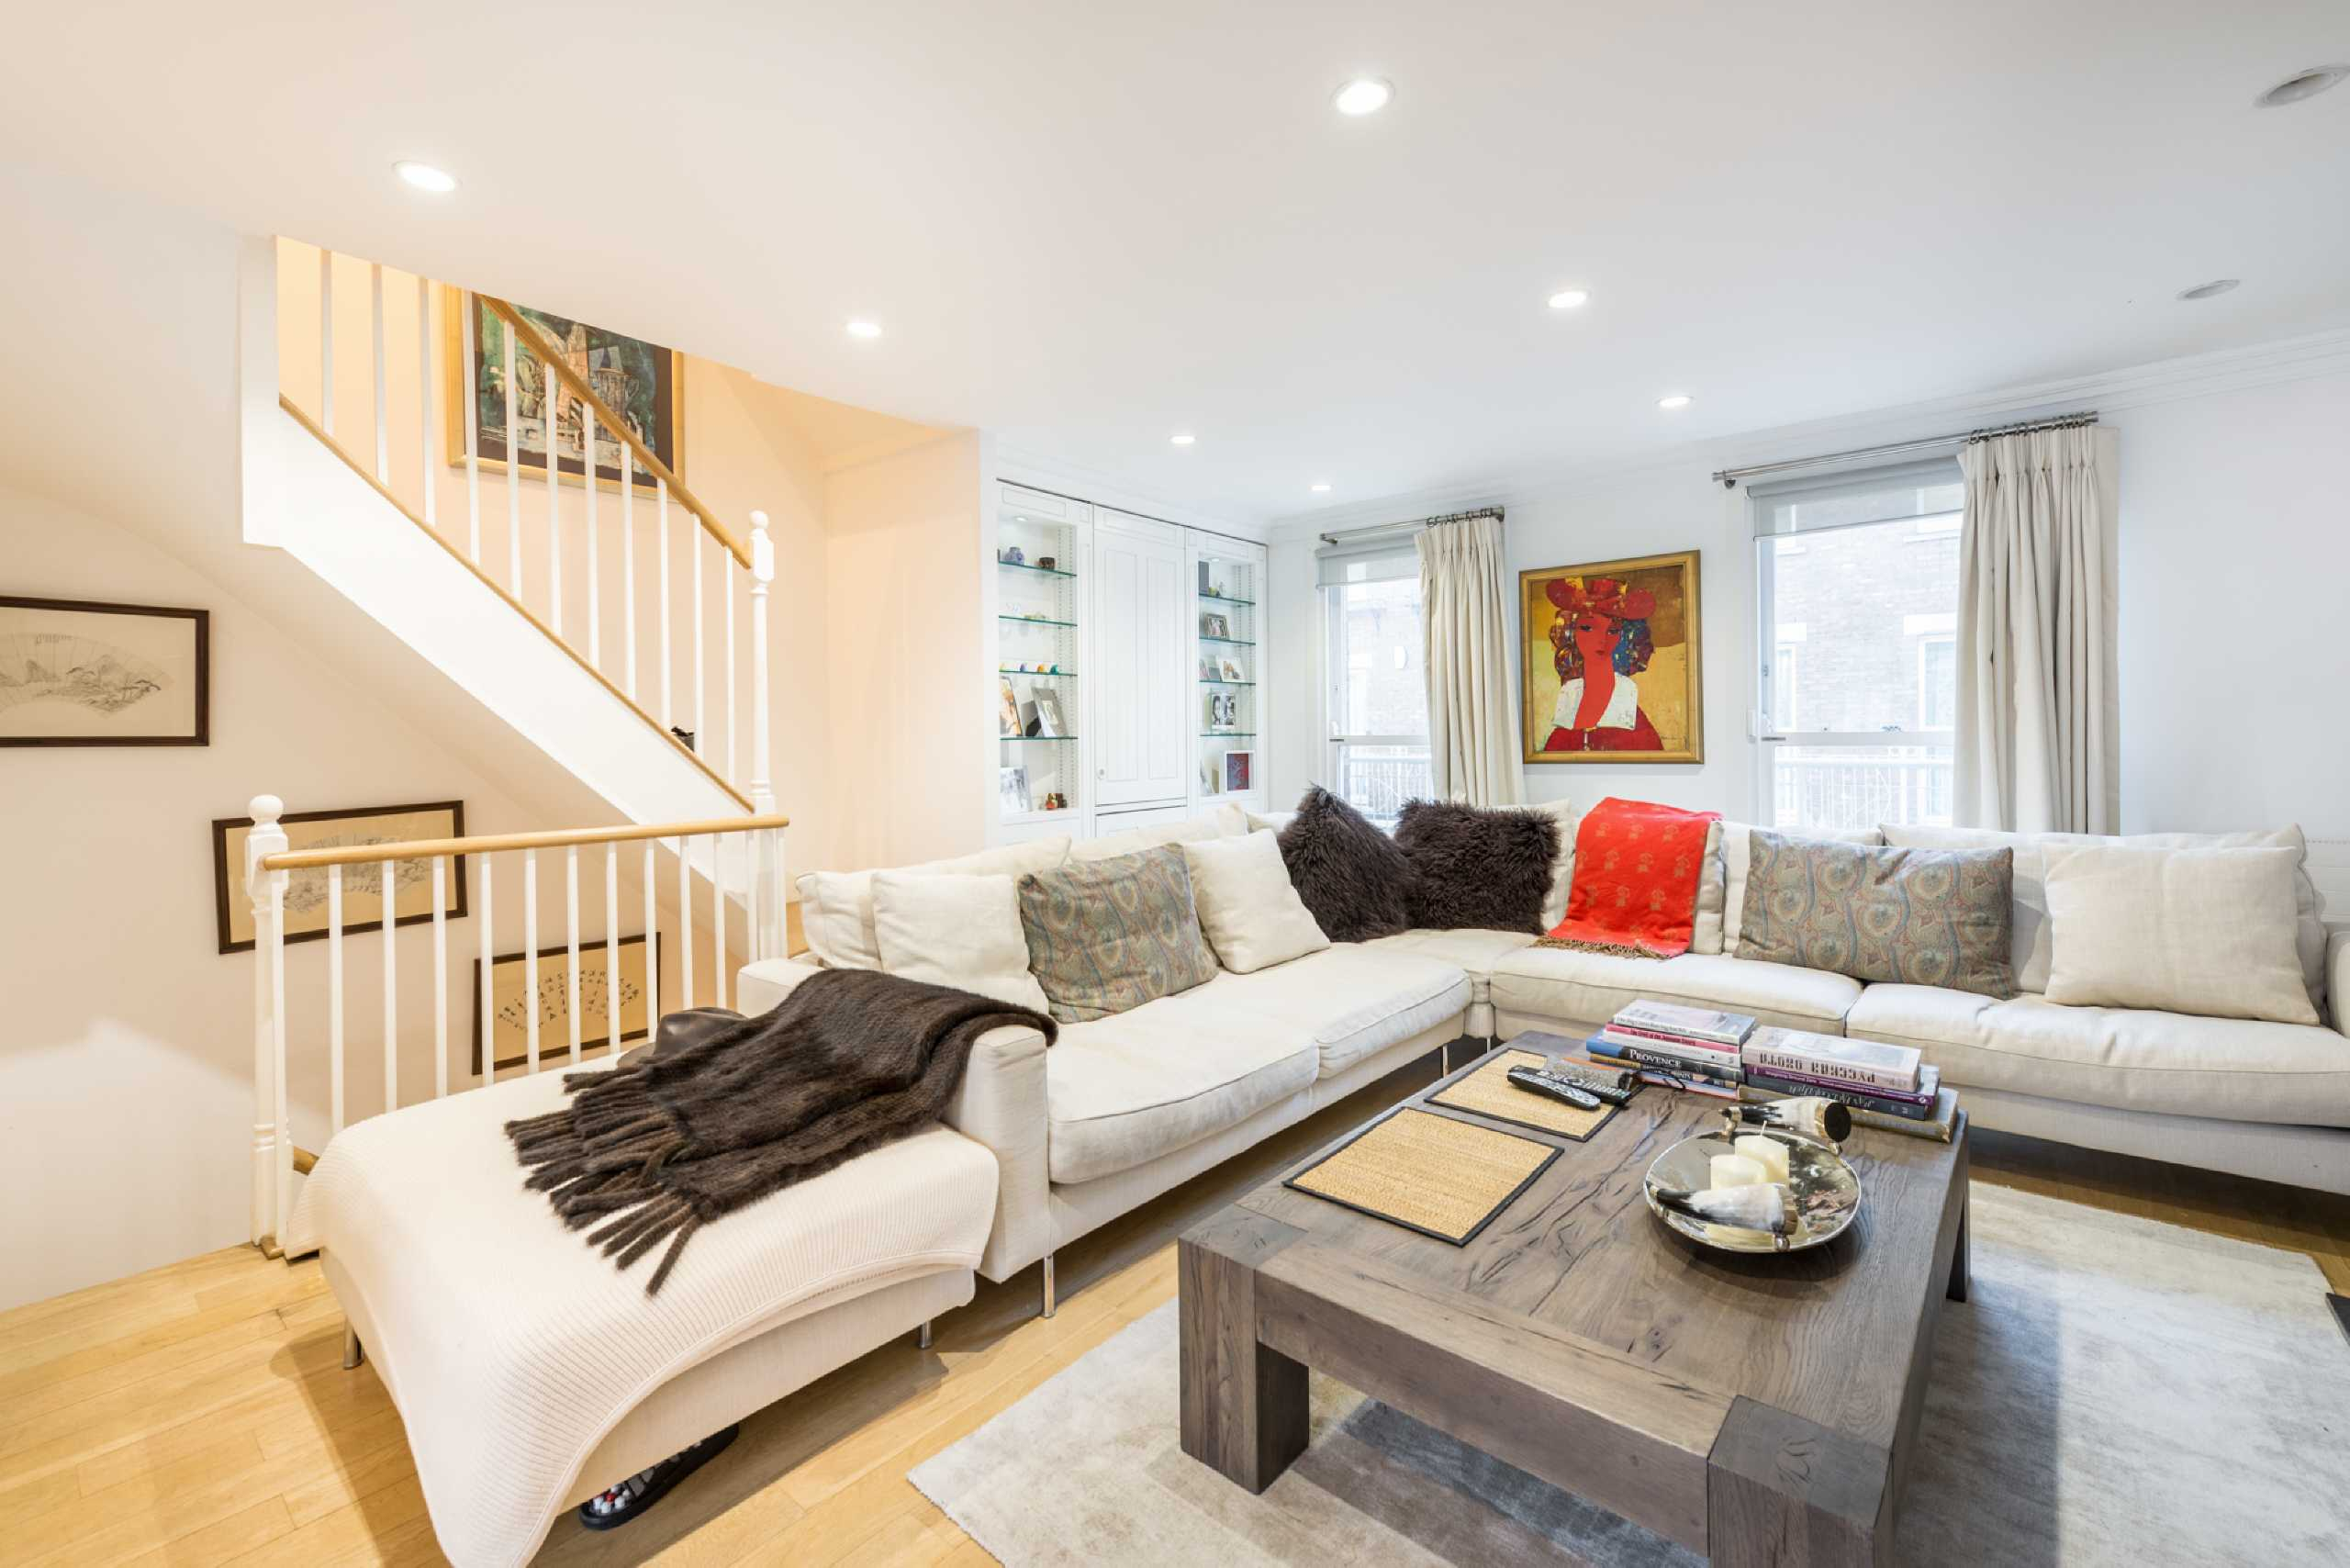 5 Bedrooms Terraced House for sale in Cinnamon Row, Battersea, London, SW11